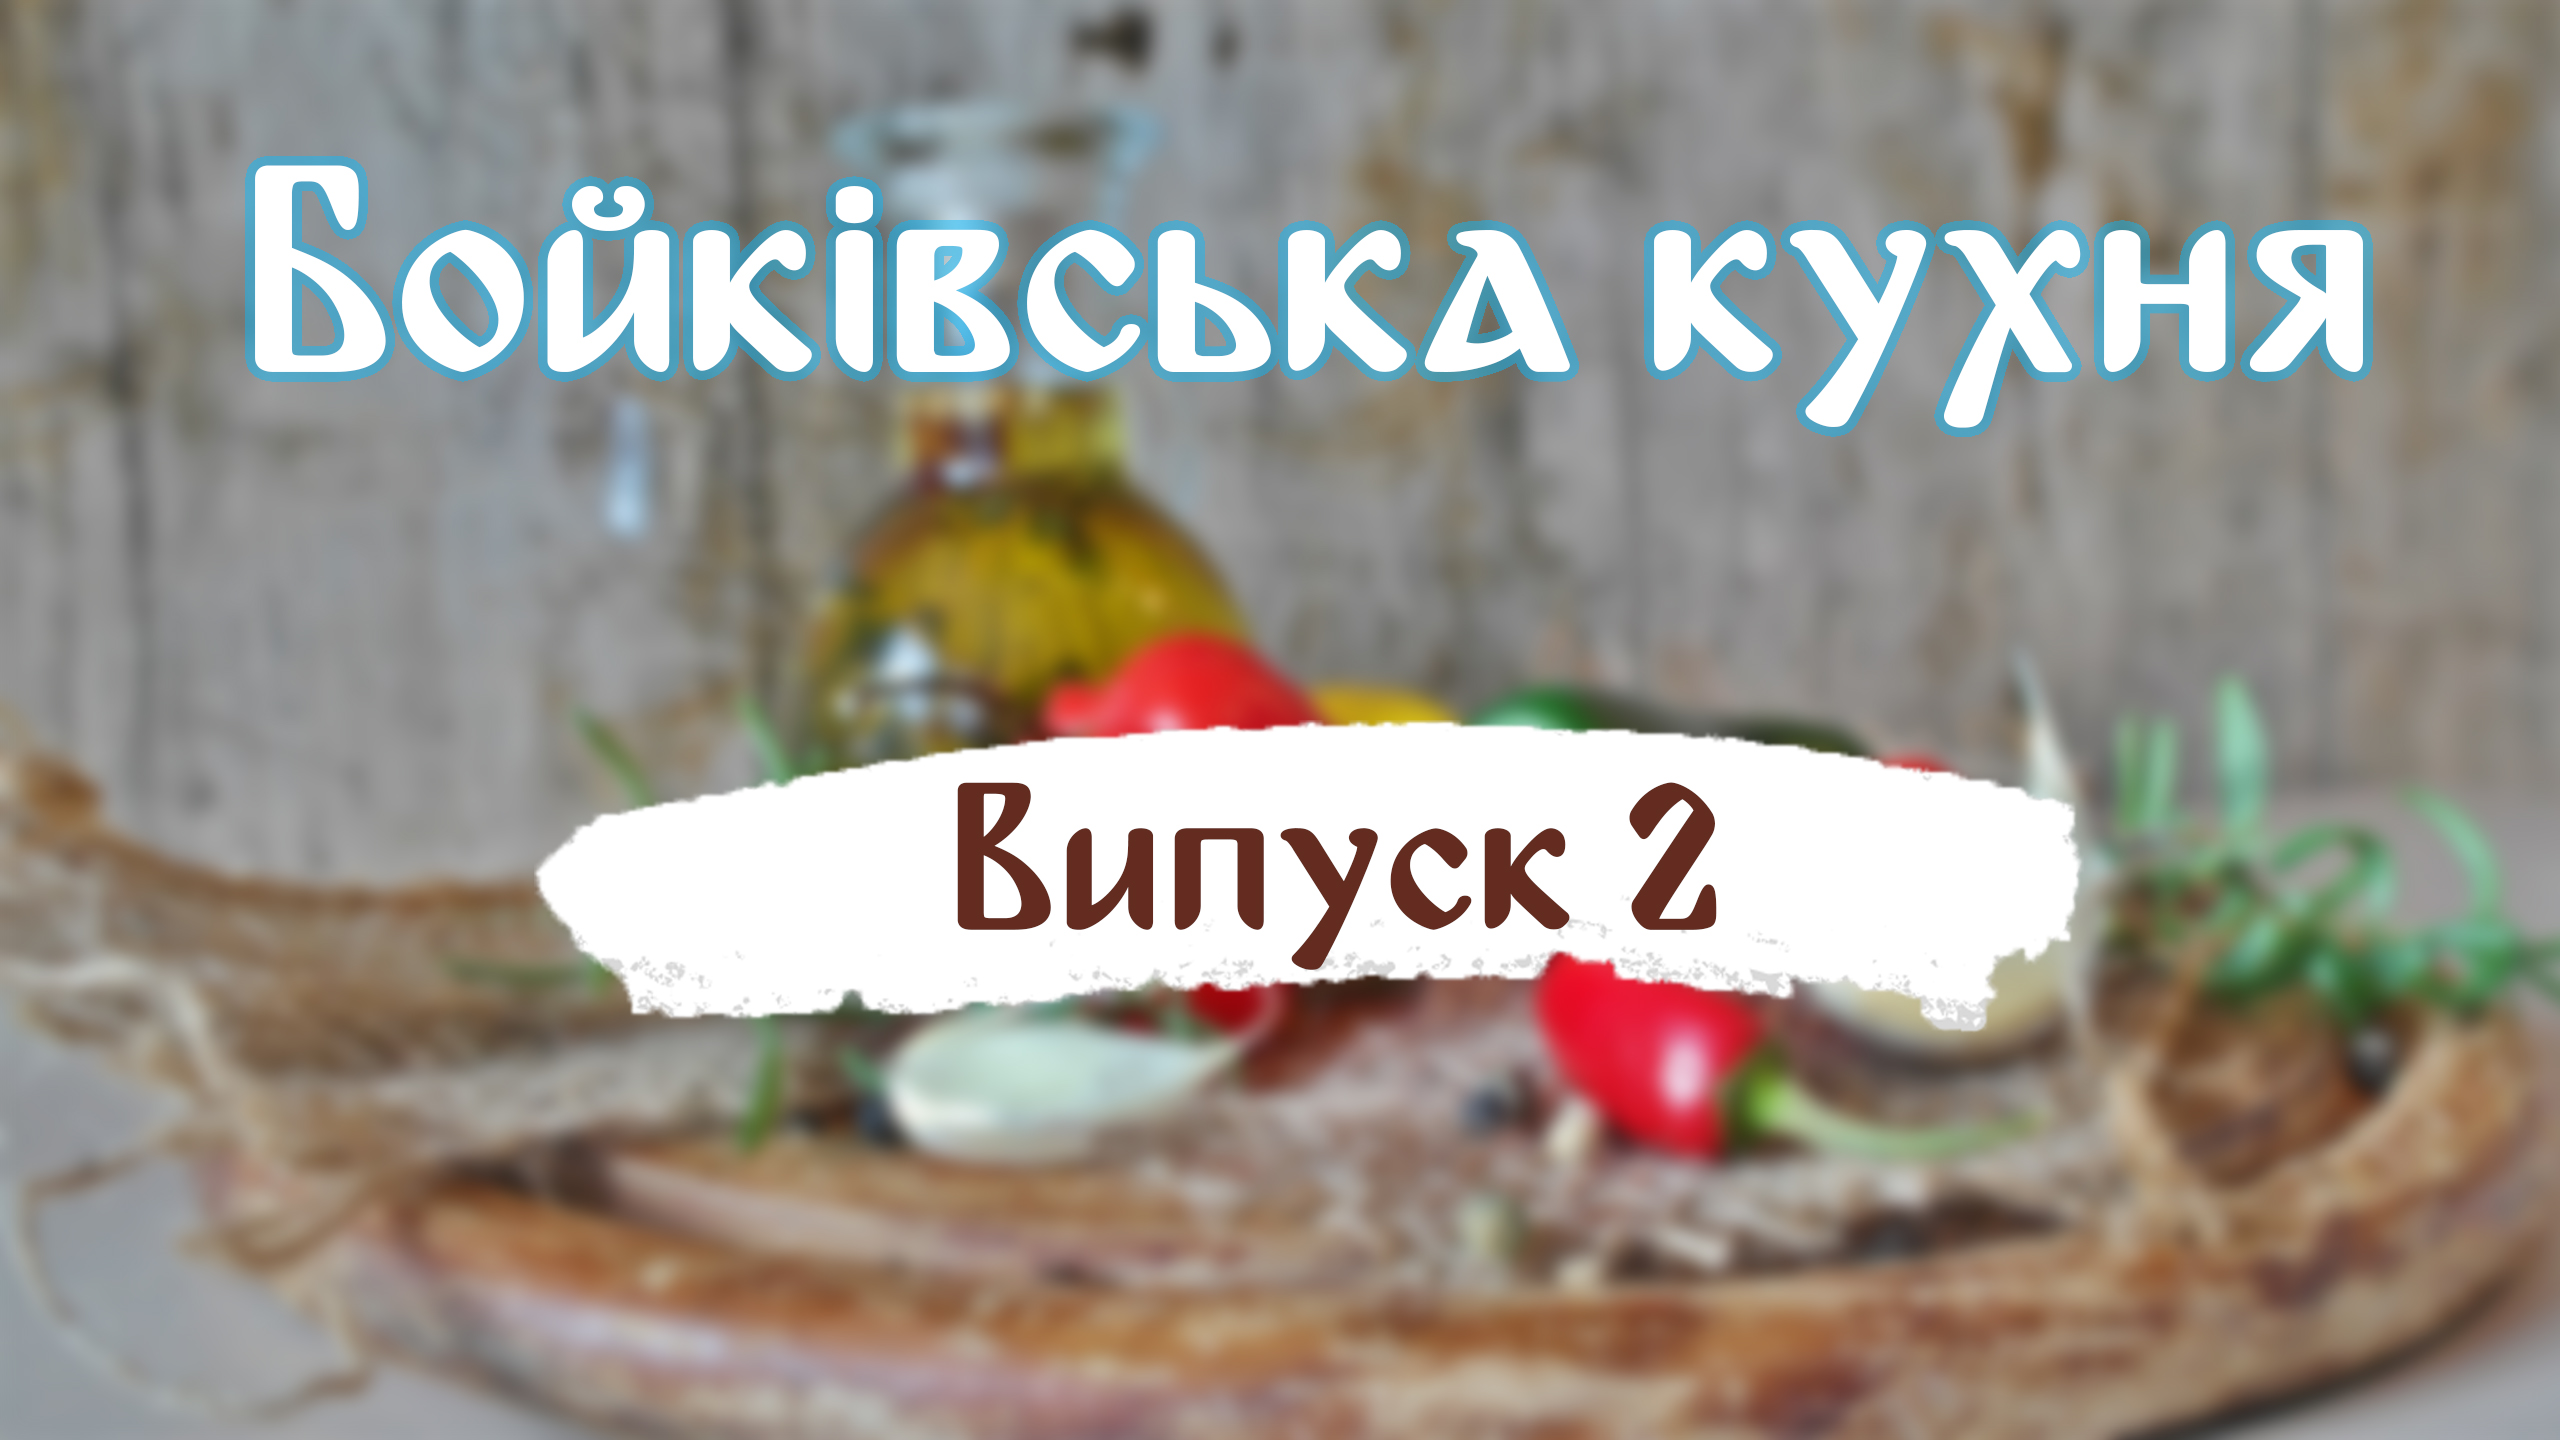 Read more about the article Бойківська кухня. Випуск 2. Лобода.